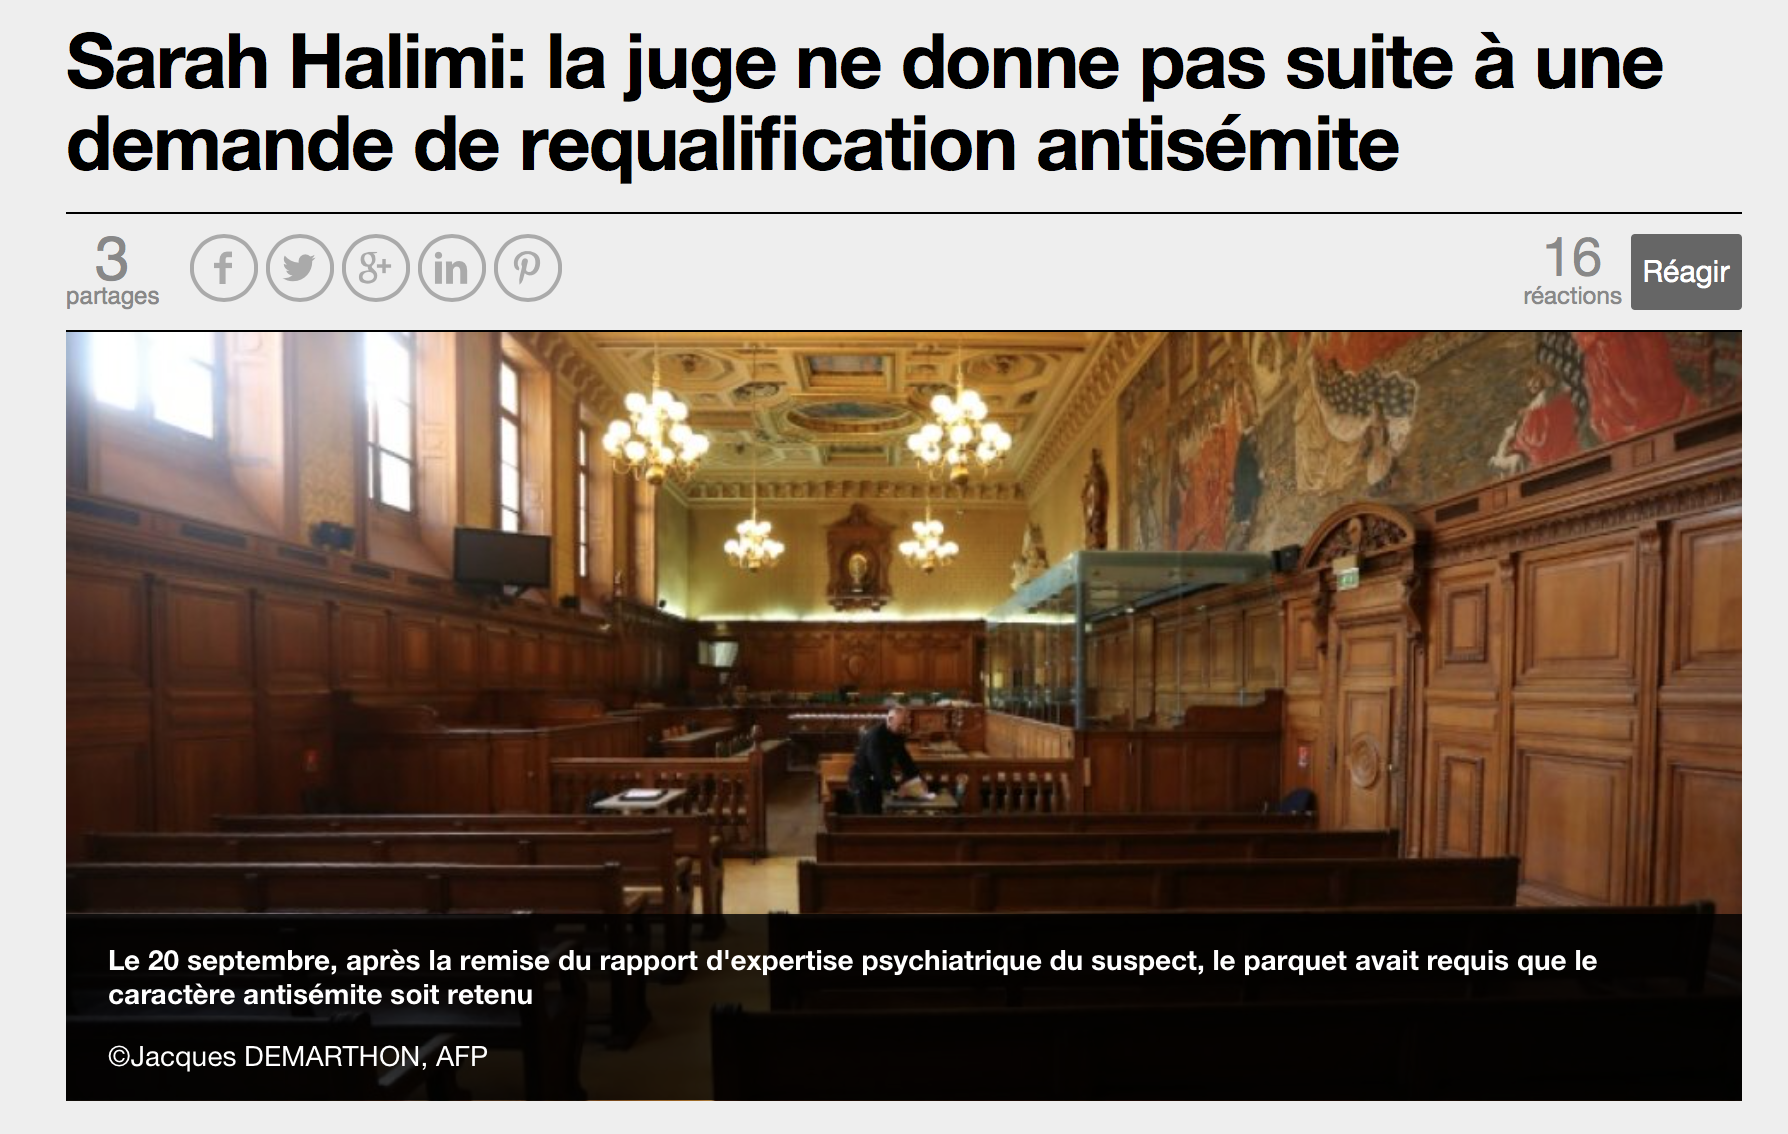 Scandale de l'affaire Sarah Halimi : le juge refuse la qualification antisémite